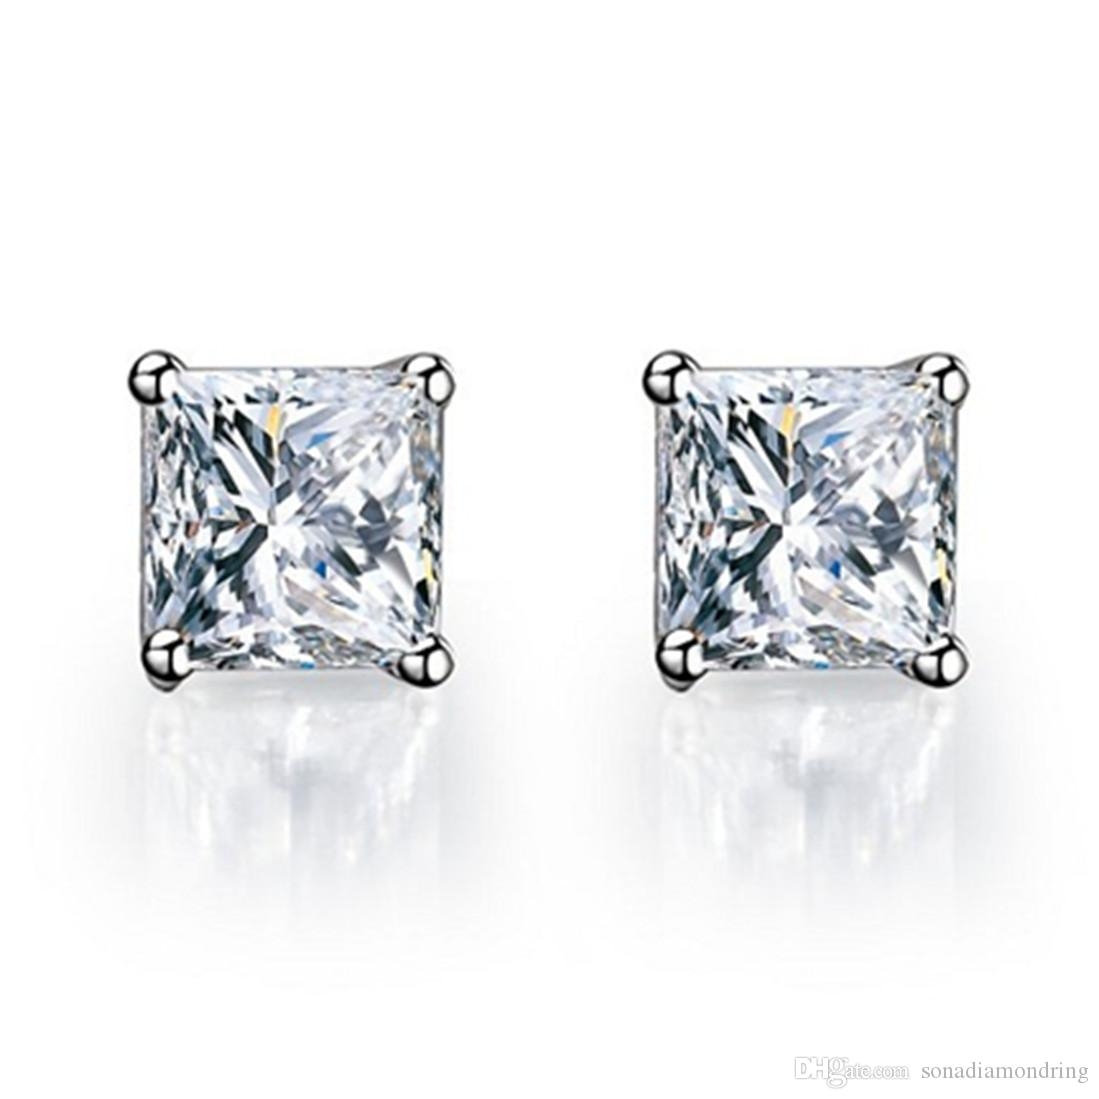 Princess Earrings Stud Engagement Jewelry Sterling Silver NSCD Synthetic Diamond  Earrings for Women 18K White Gold Plated Brand Quality Stud Princess ... d26ac95d0b32